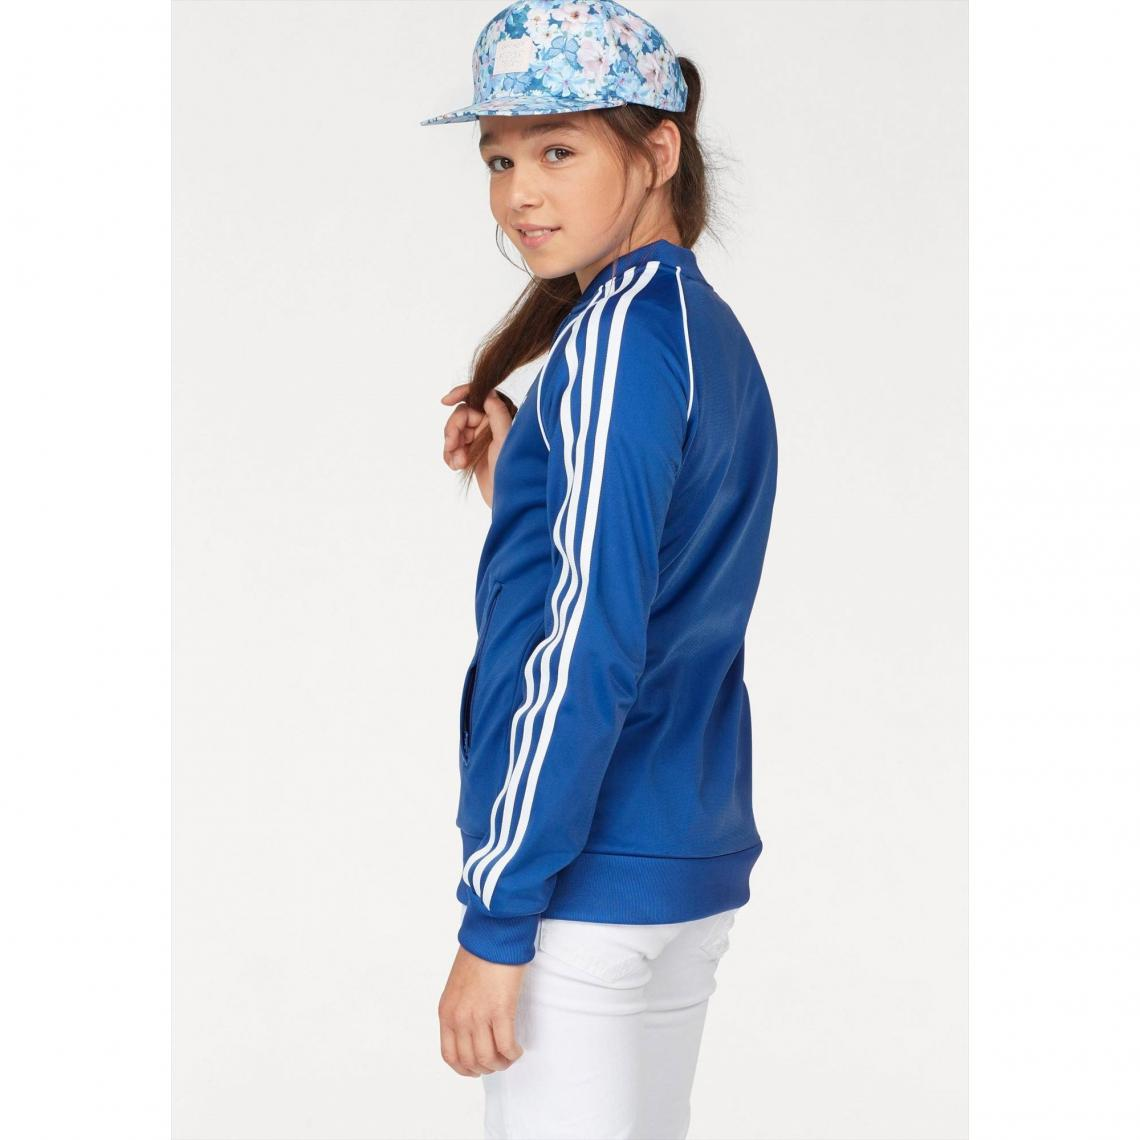 Survêtement Originals® Adidas Veste Bleu Junior 3suisses De ZwFwq8n5